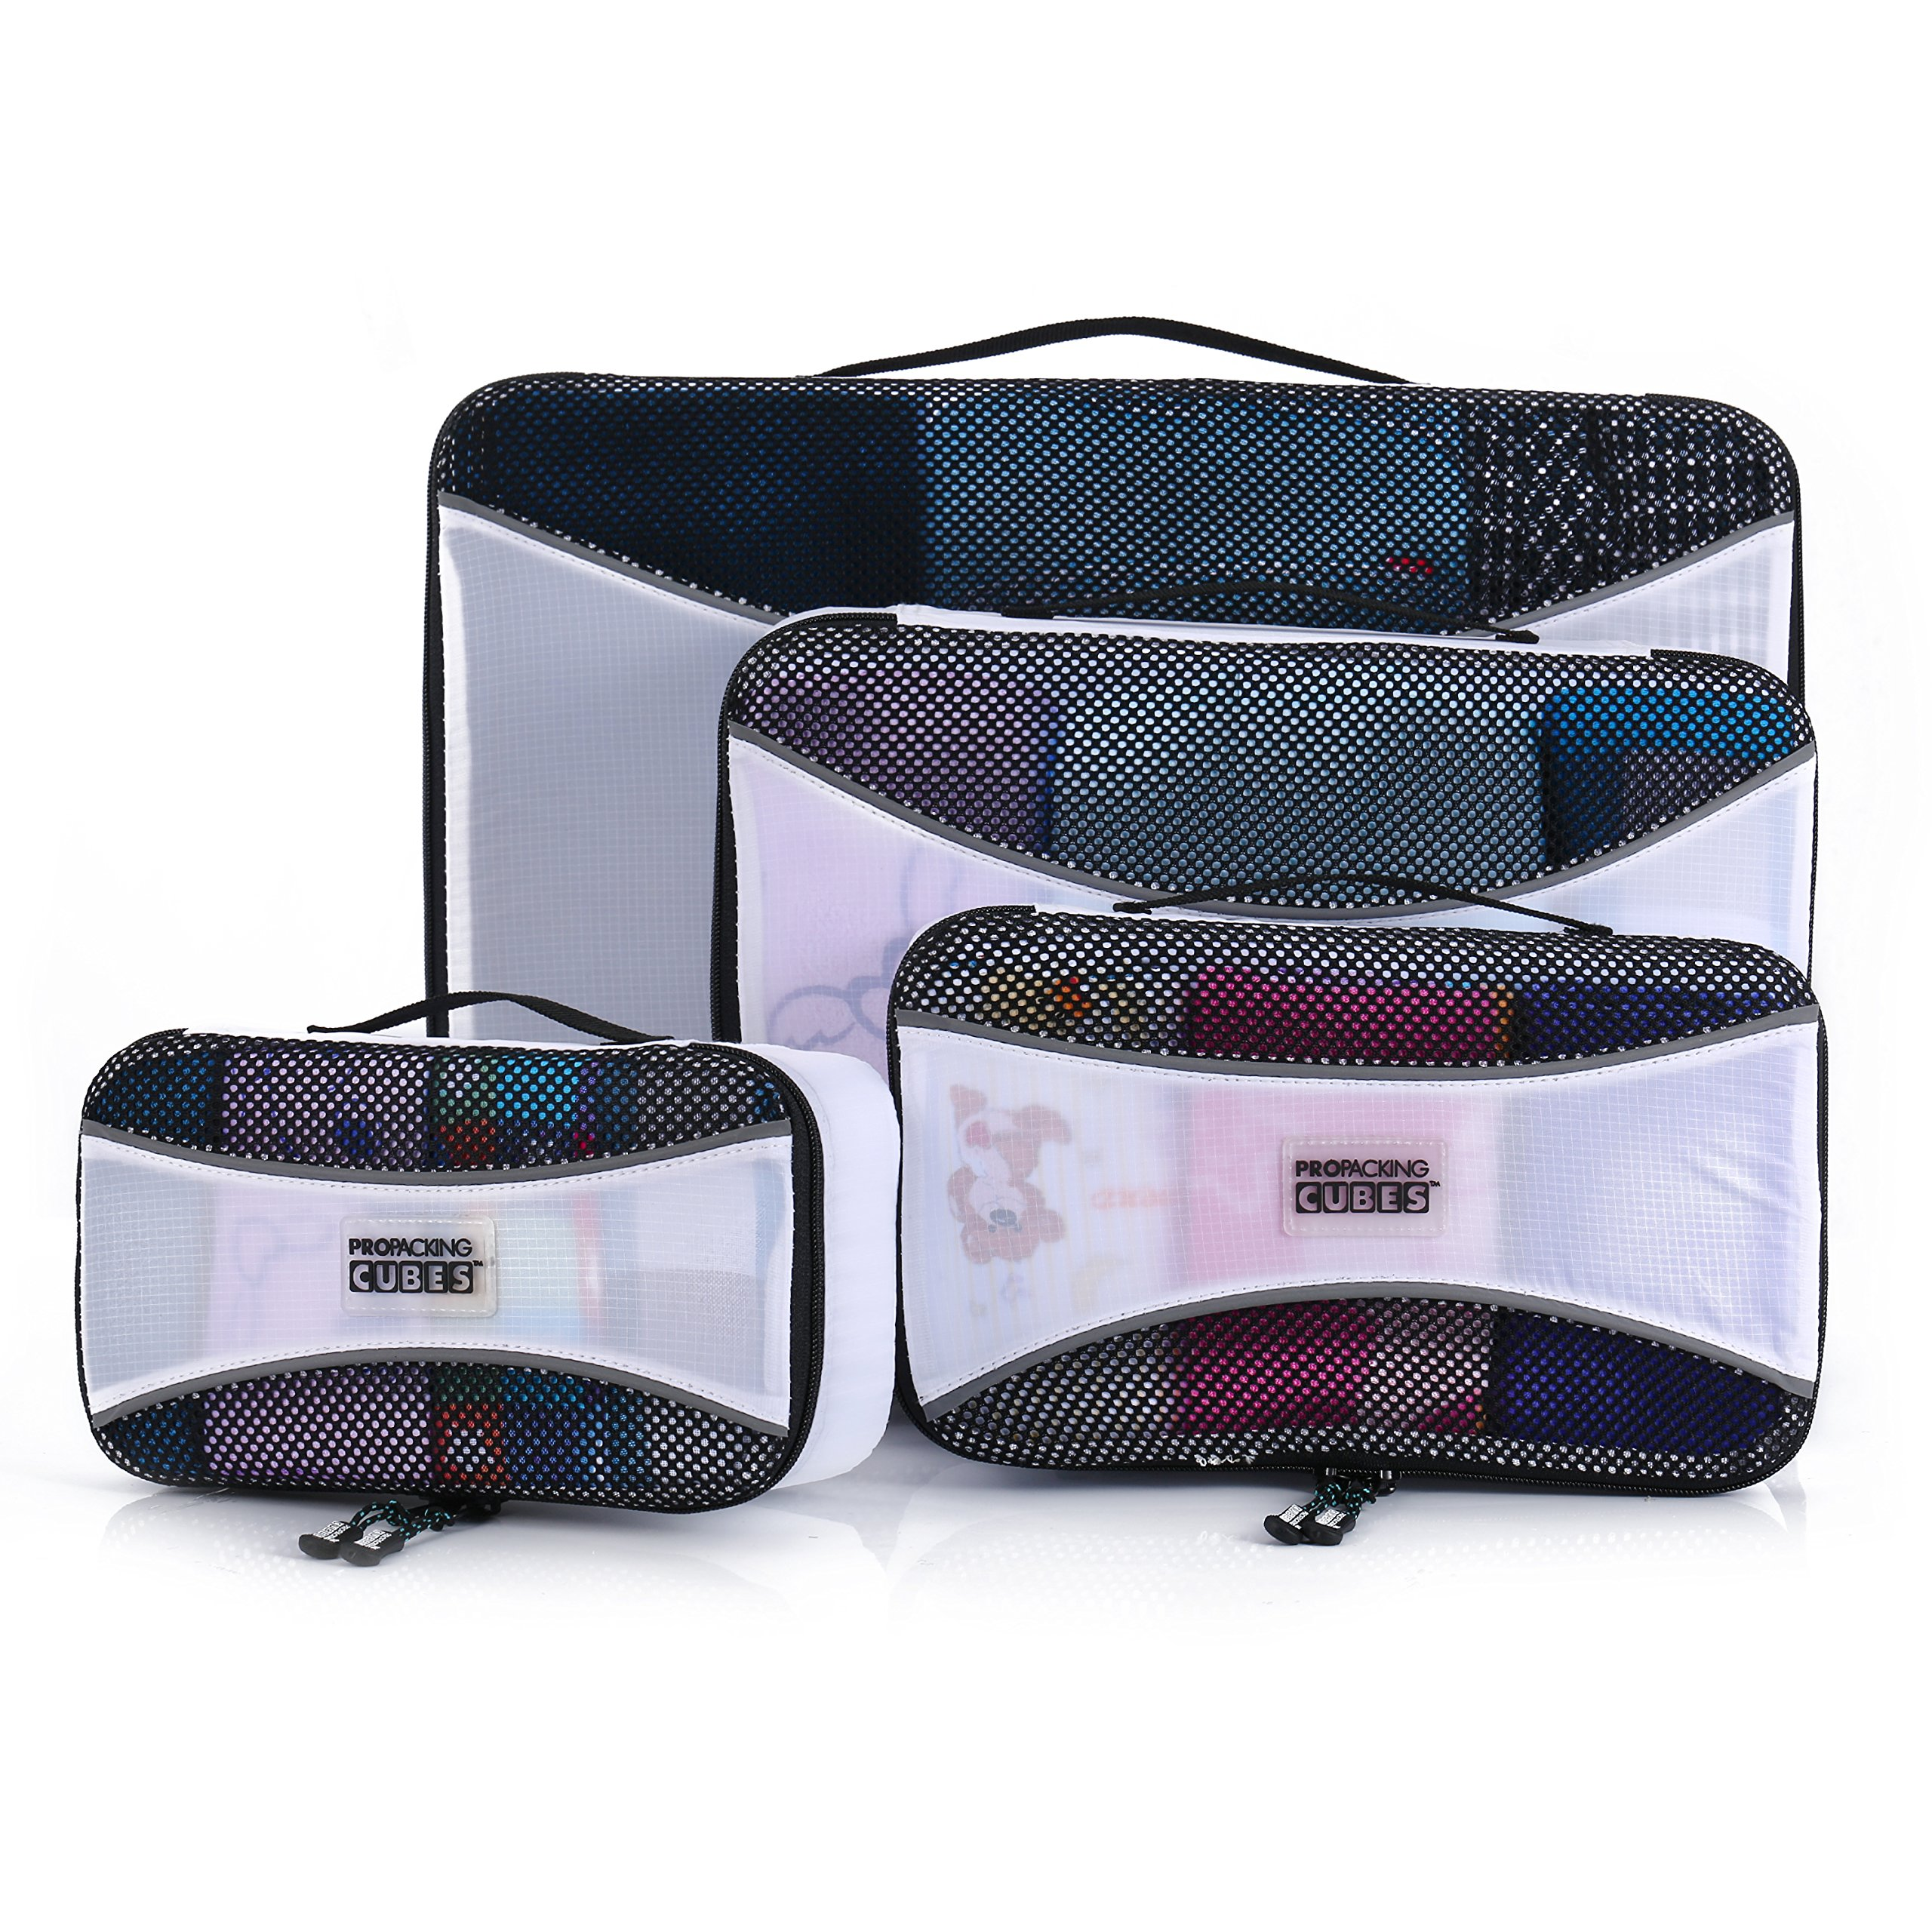 pro packing cubes 4 piece travel packing cube value set. Black Bedroom Furniture Sets. Home Design Ideas